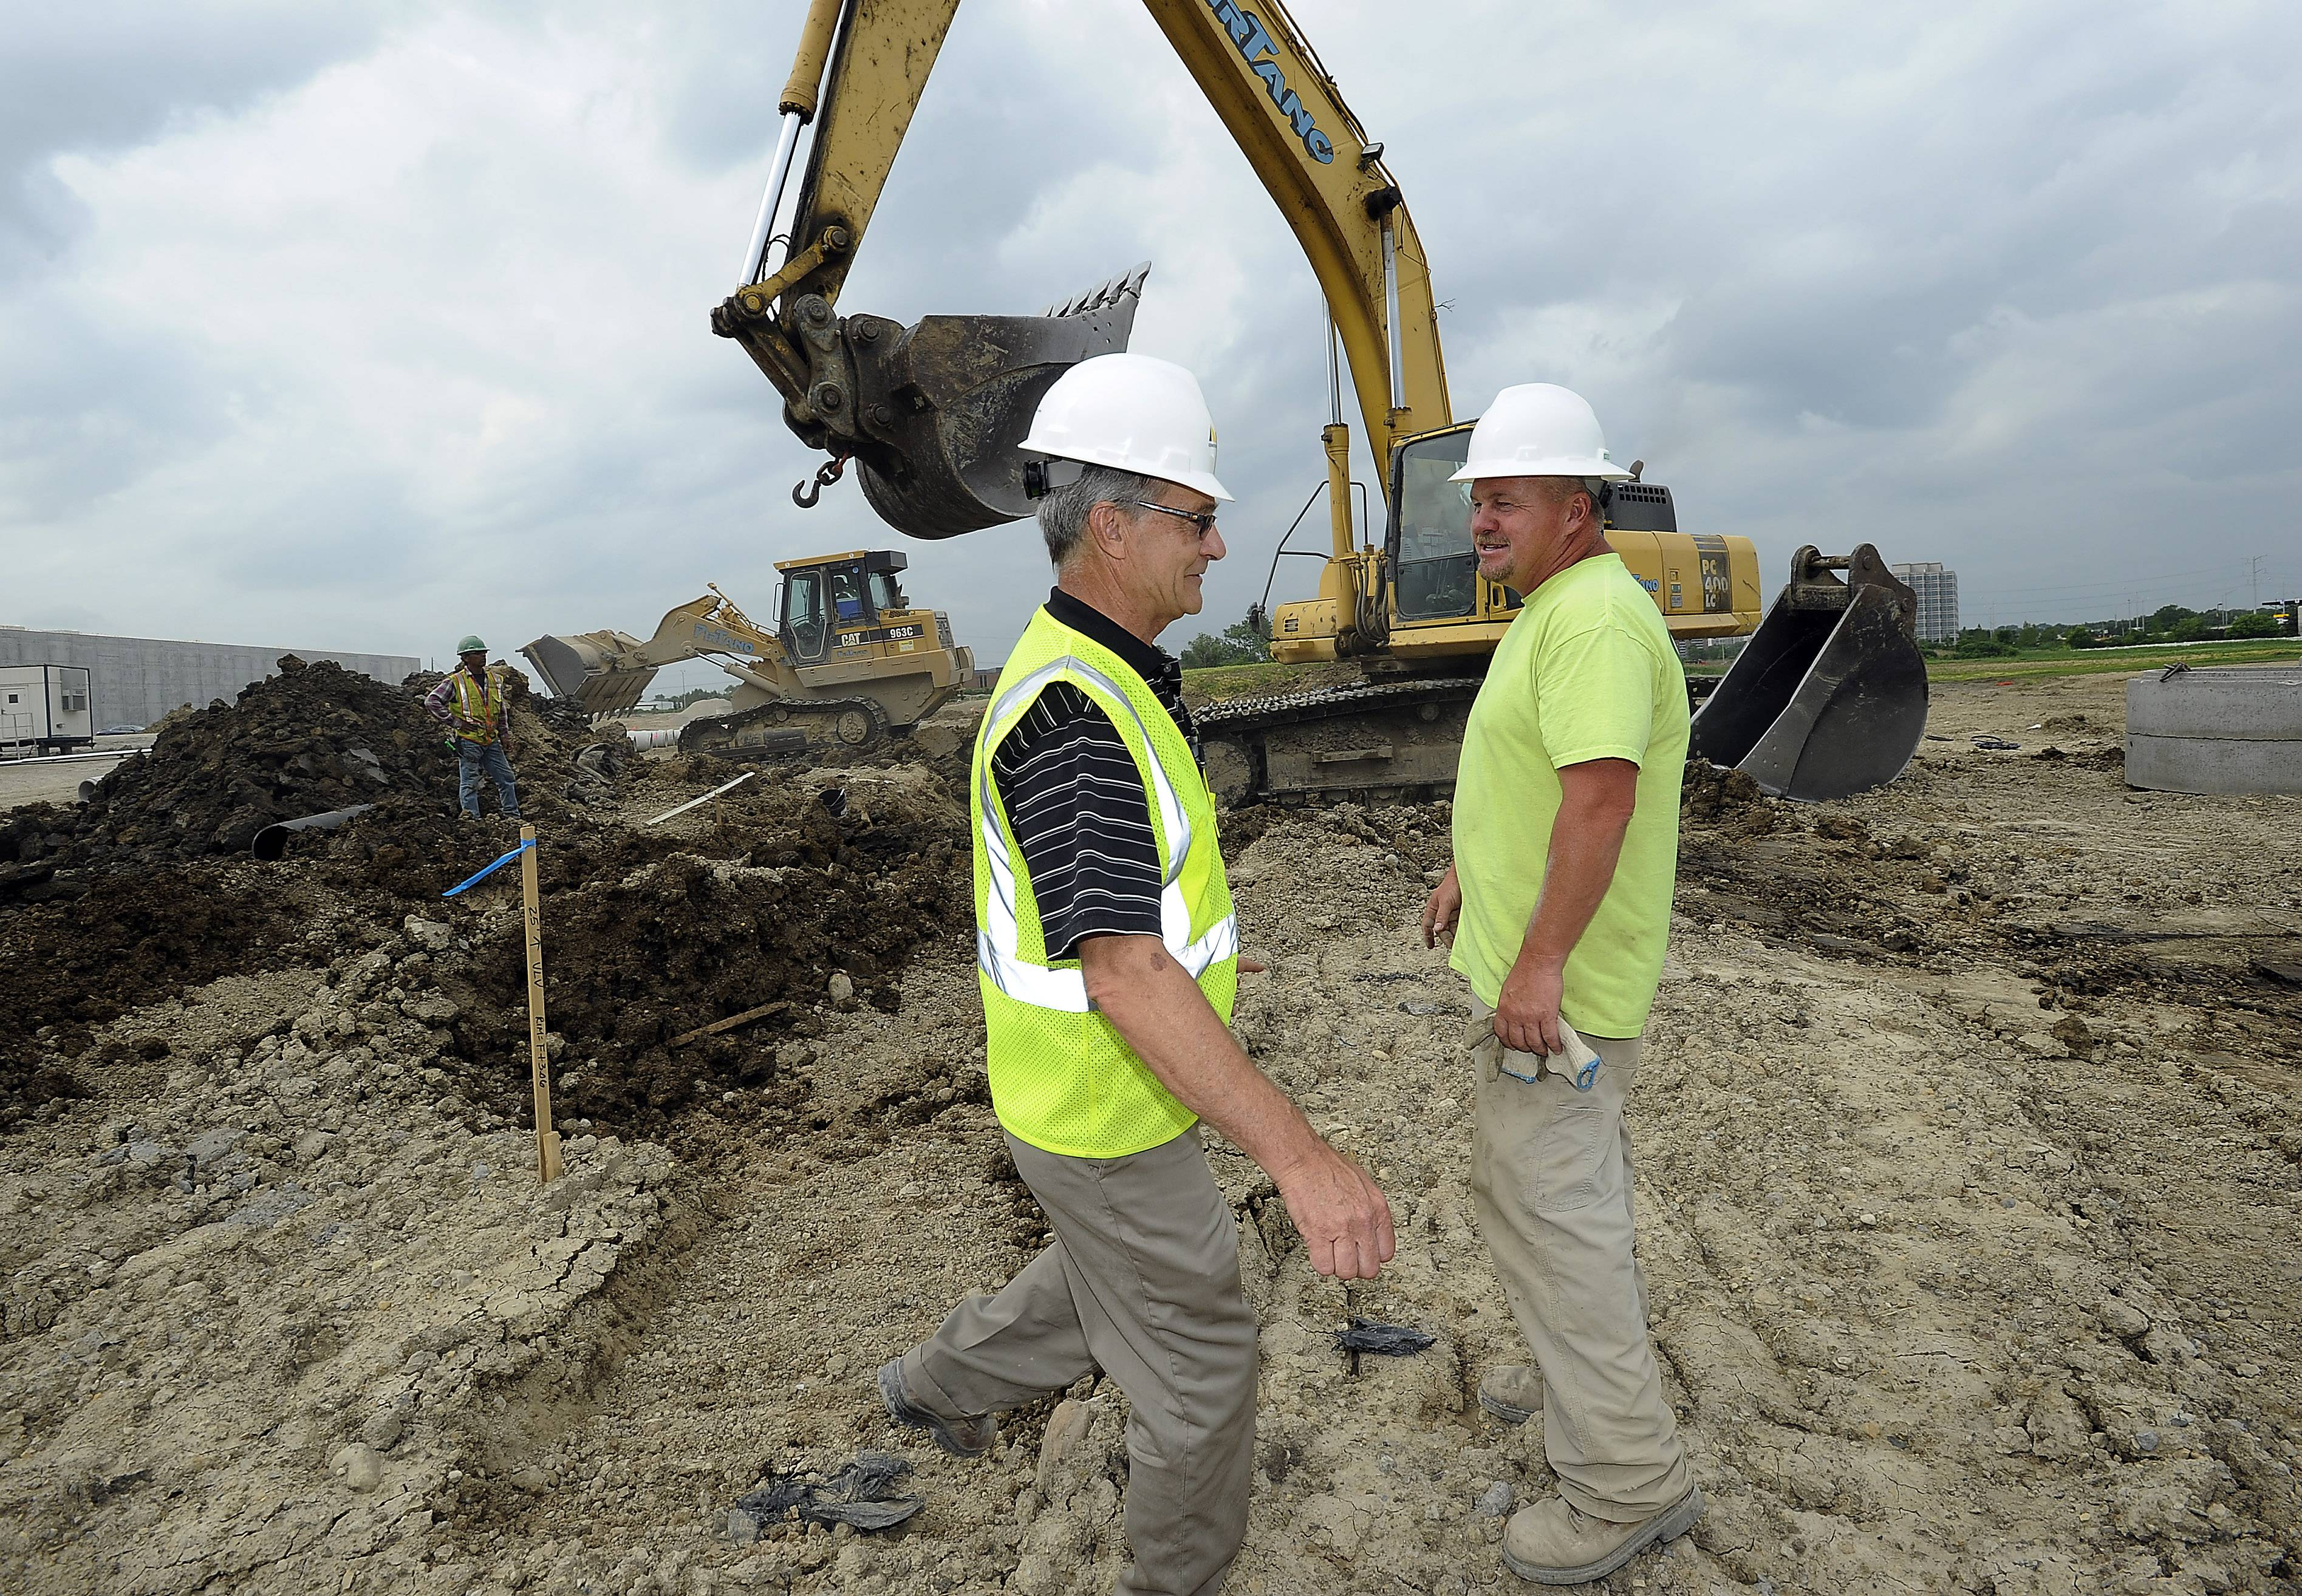 Bill Nielsen of Peak Construction Corp., left, talks with Chuck Young, sewer foreman, at the Sunstar Americas Inc. job site. The company's new national headquarters is will open in 2015.